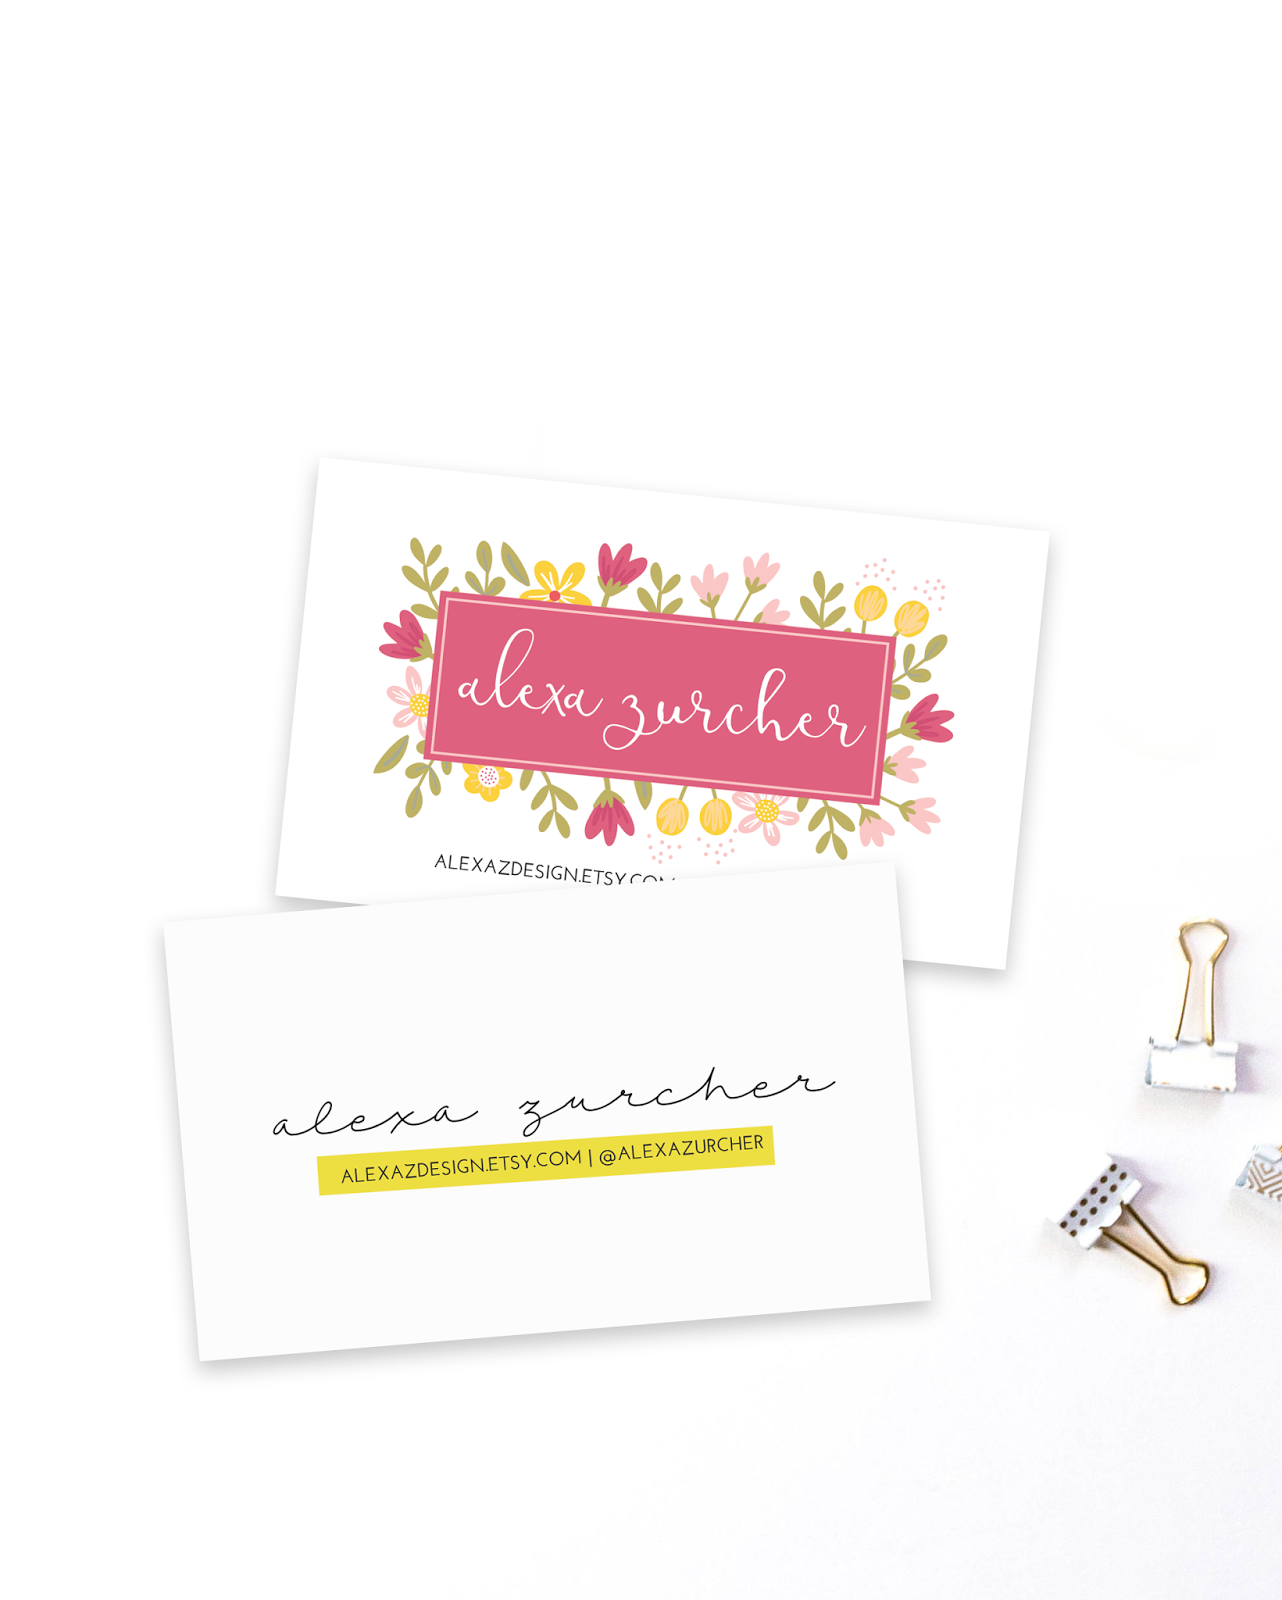 FREE Business Card Templates | Zurcher Co | He + I = Party of 5